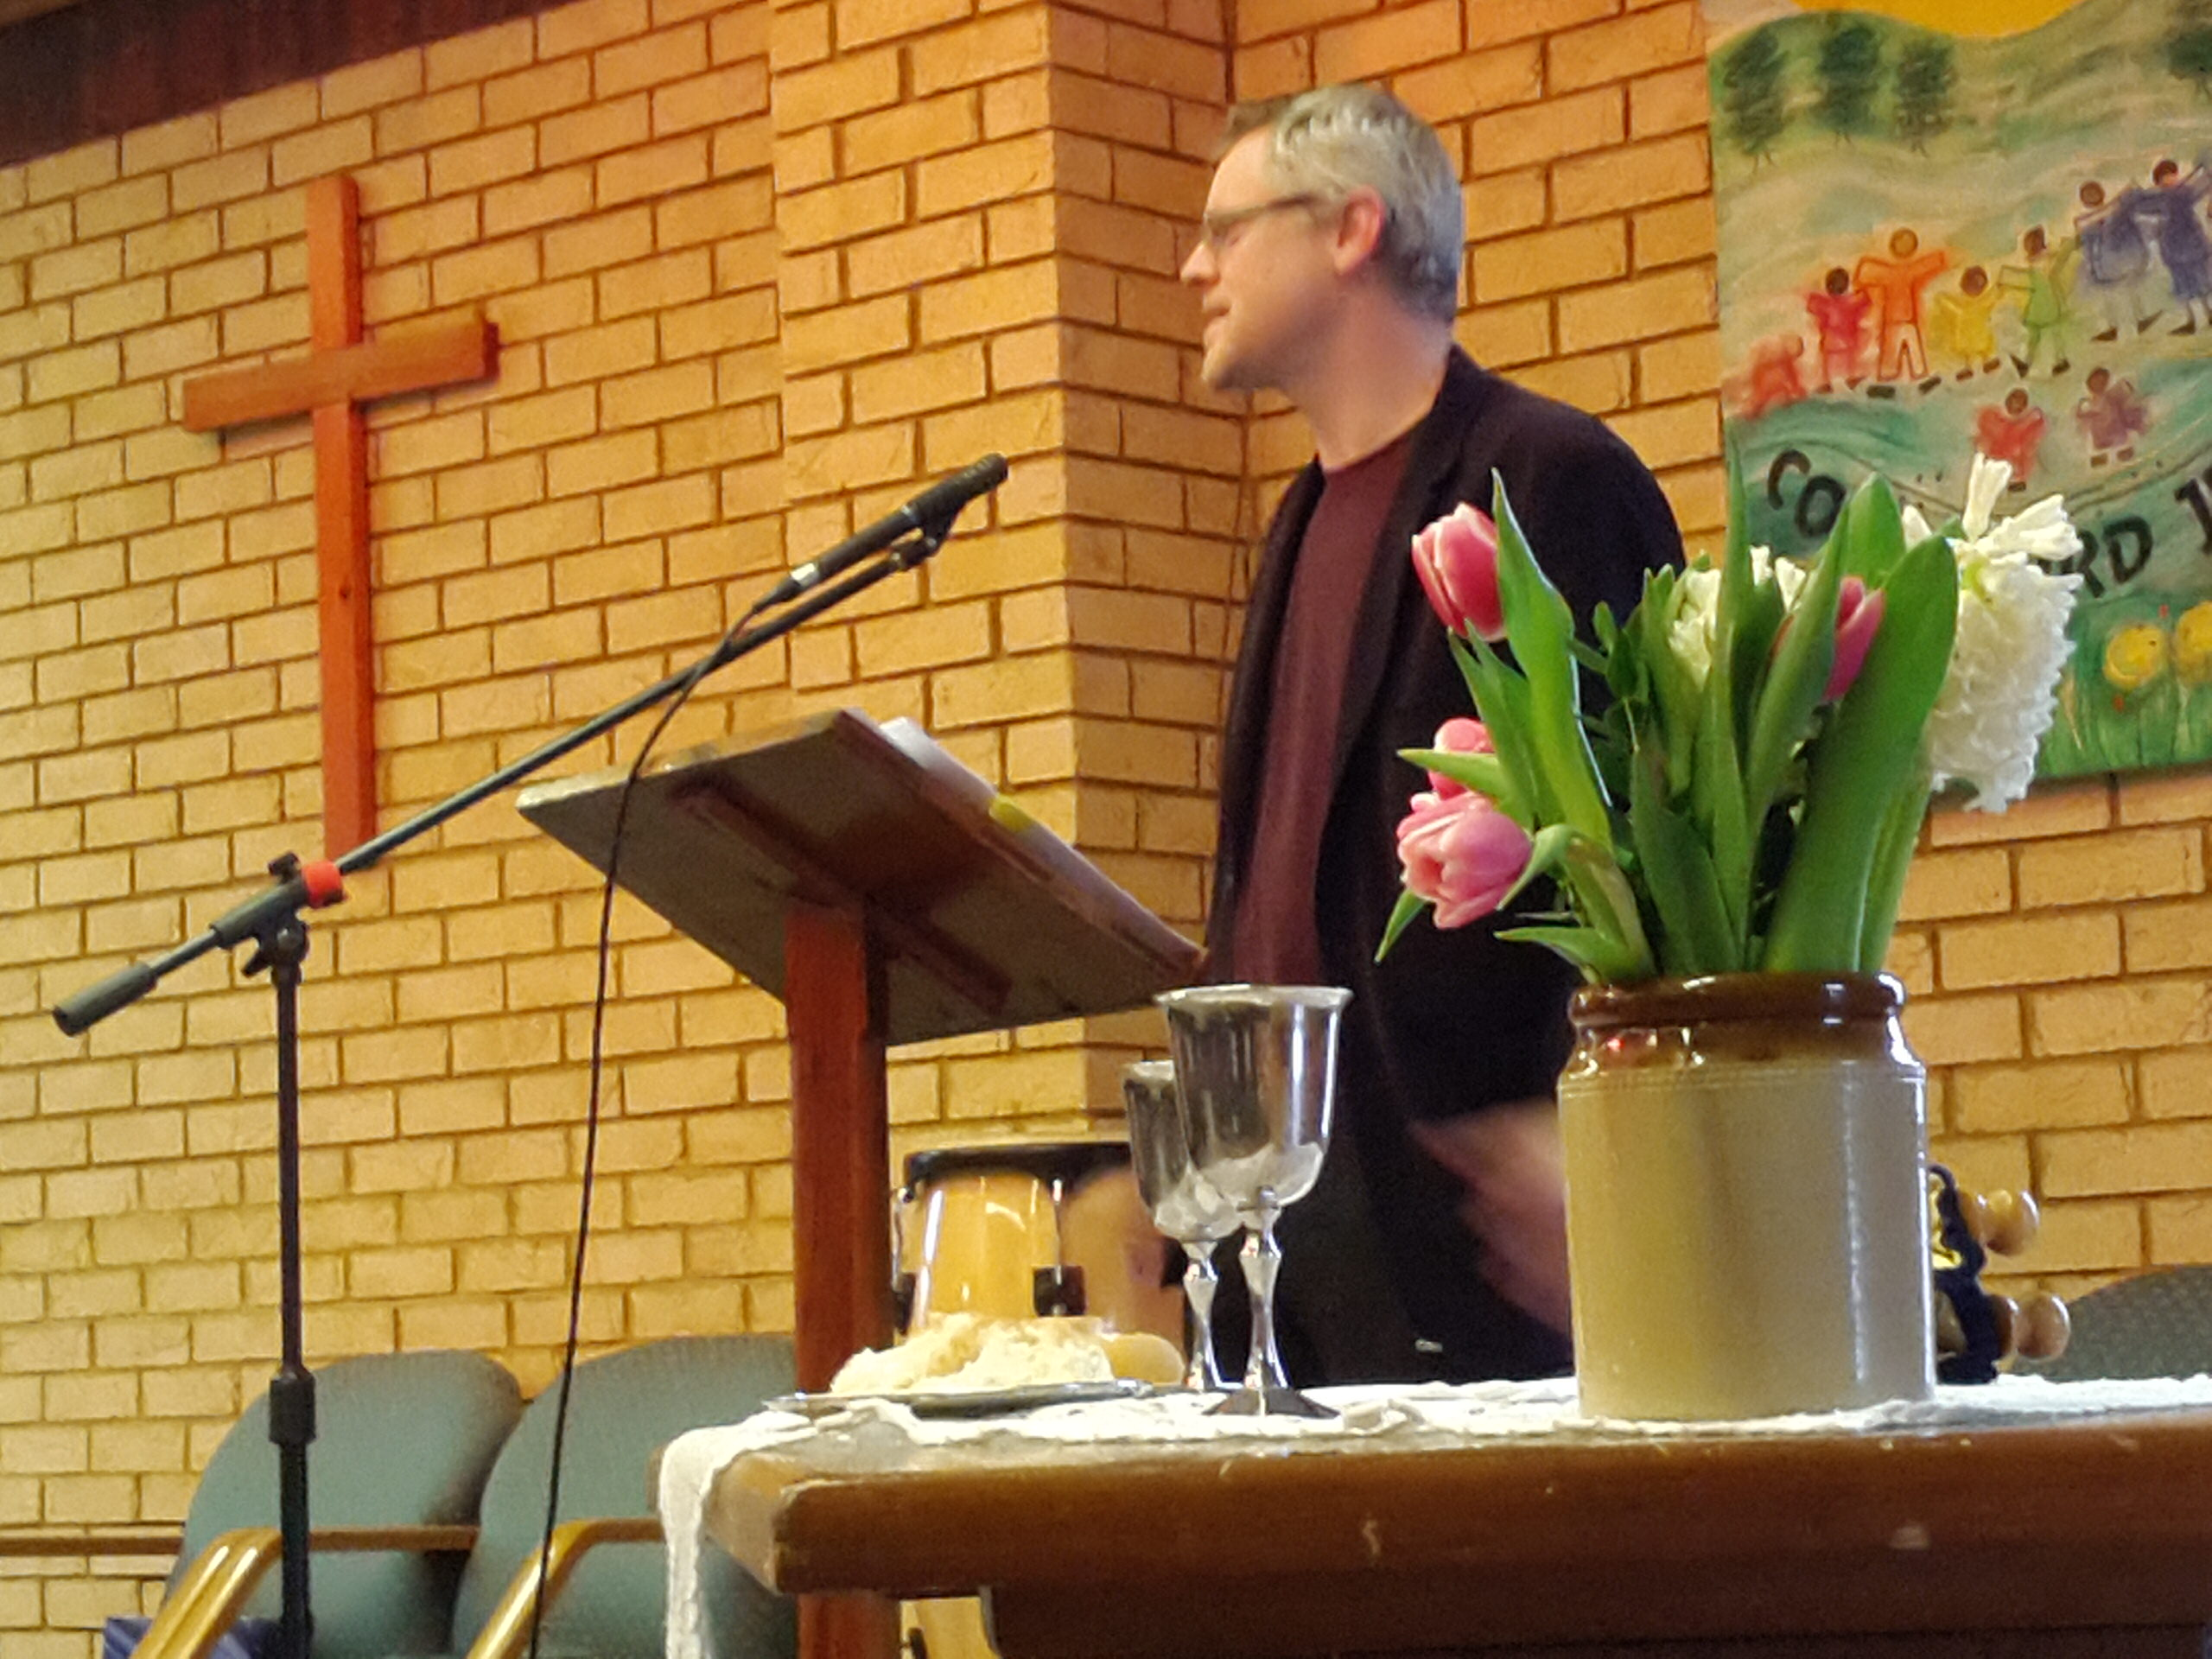 Paul Wintle speaking at Main Street Community Church on 21 January 2018.